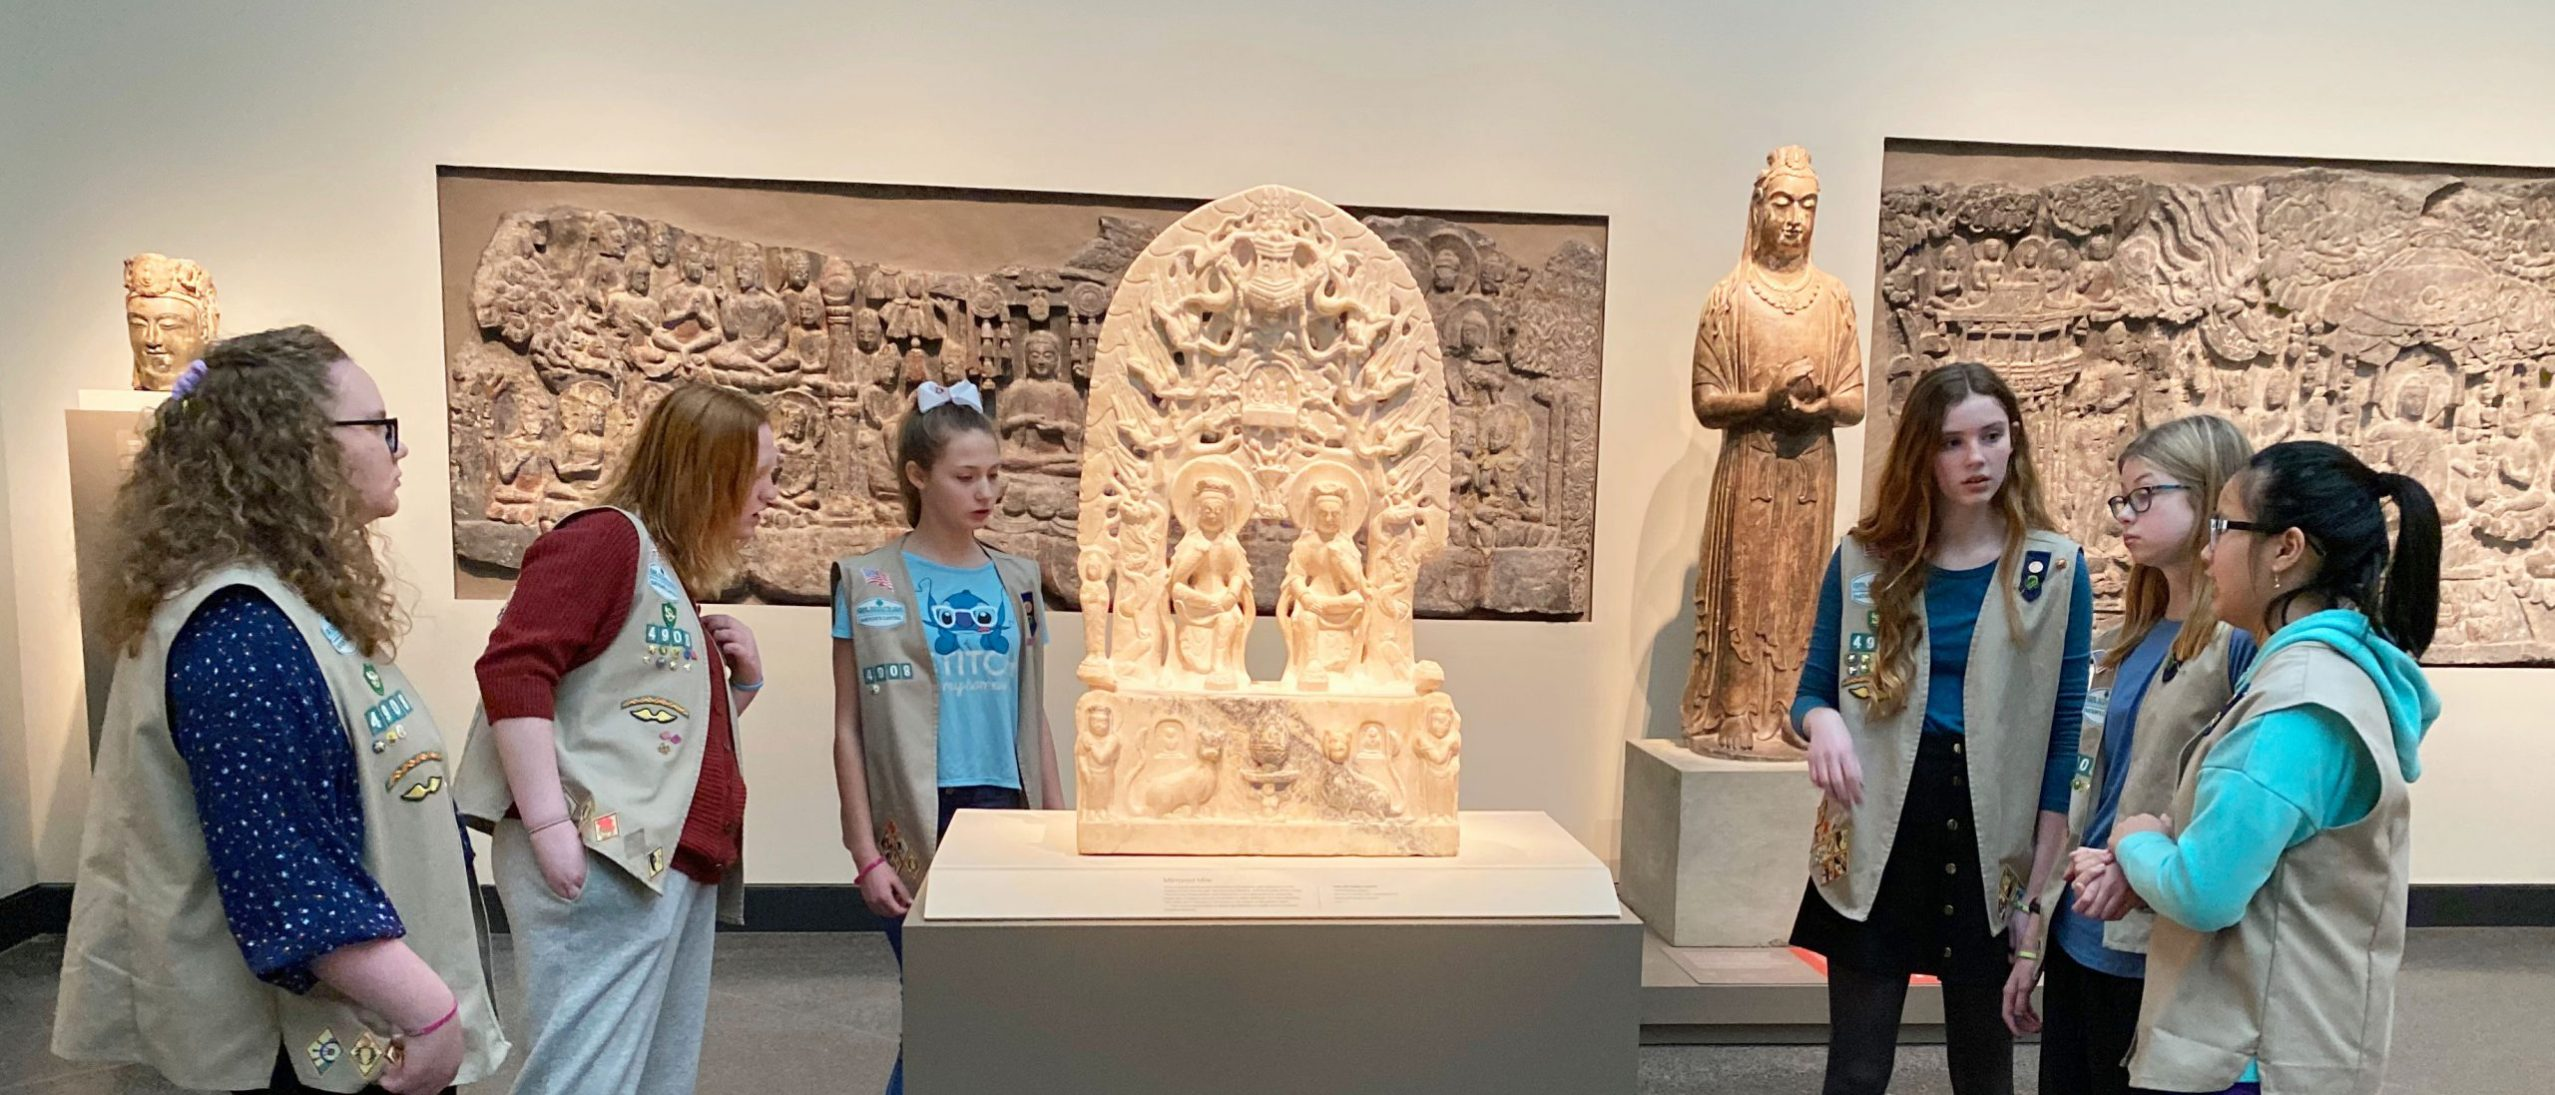 six girlscouts stand around a buddhist sculpture showing two figures on a pedastal with an elaborate arched backing above them. mounted in the wall behind the girls are two carved reliefs of buddhist scenes. also behind them are the head of a sculpture and a full sculpture standing